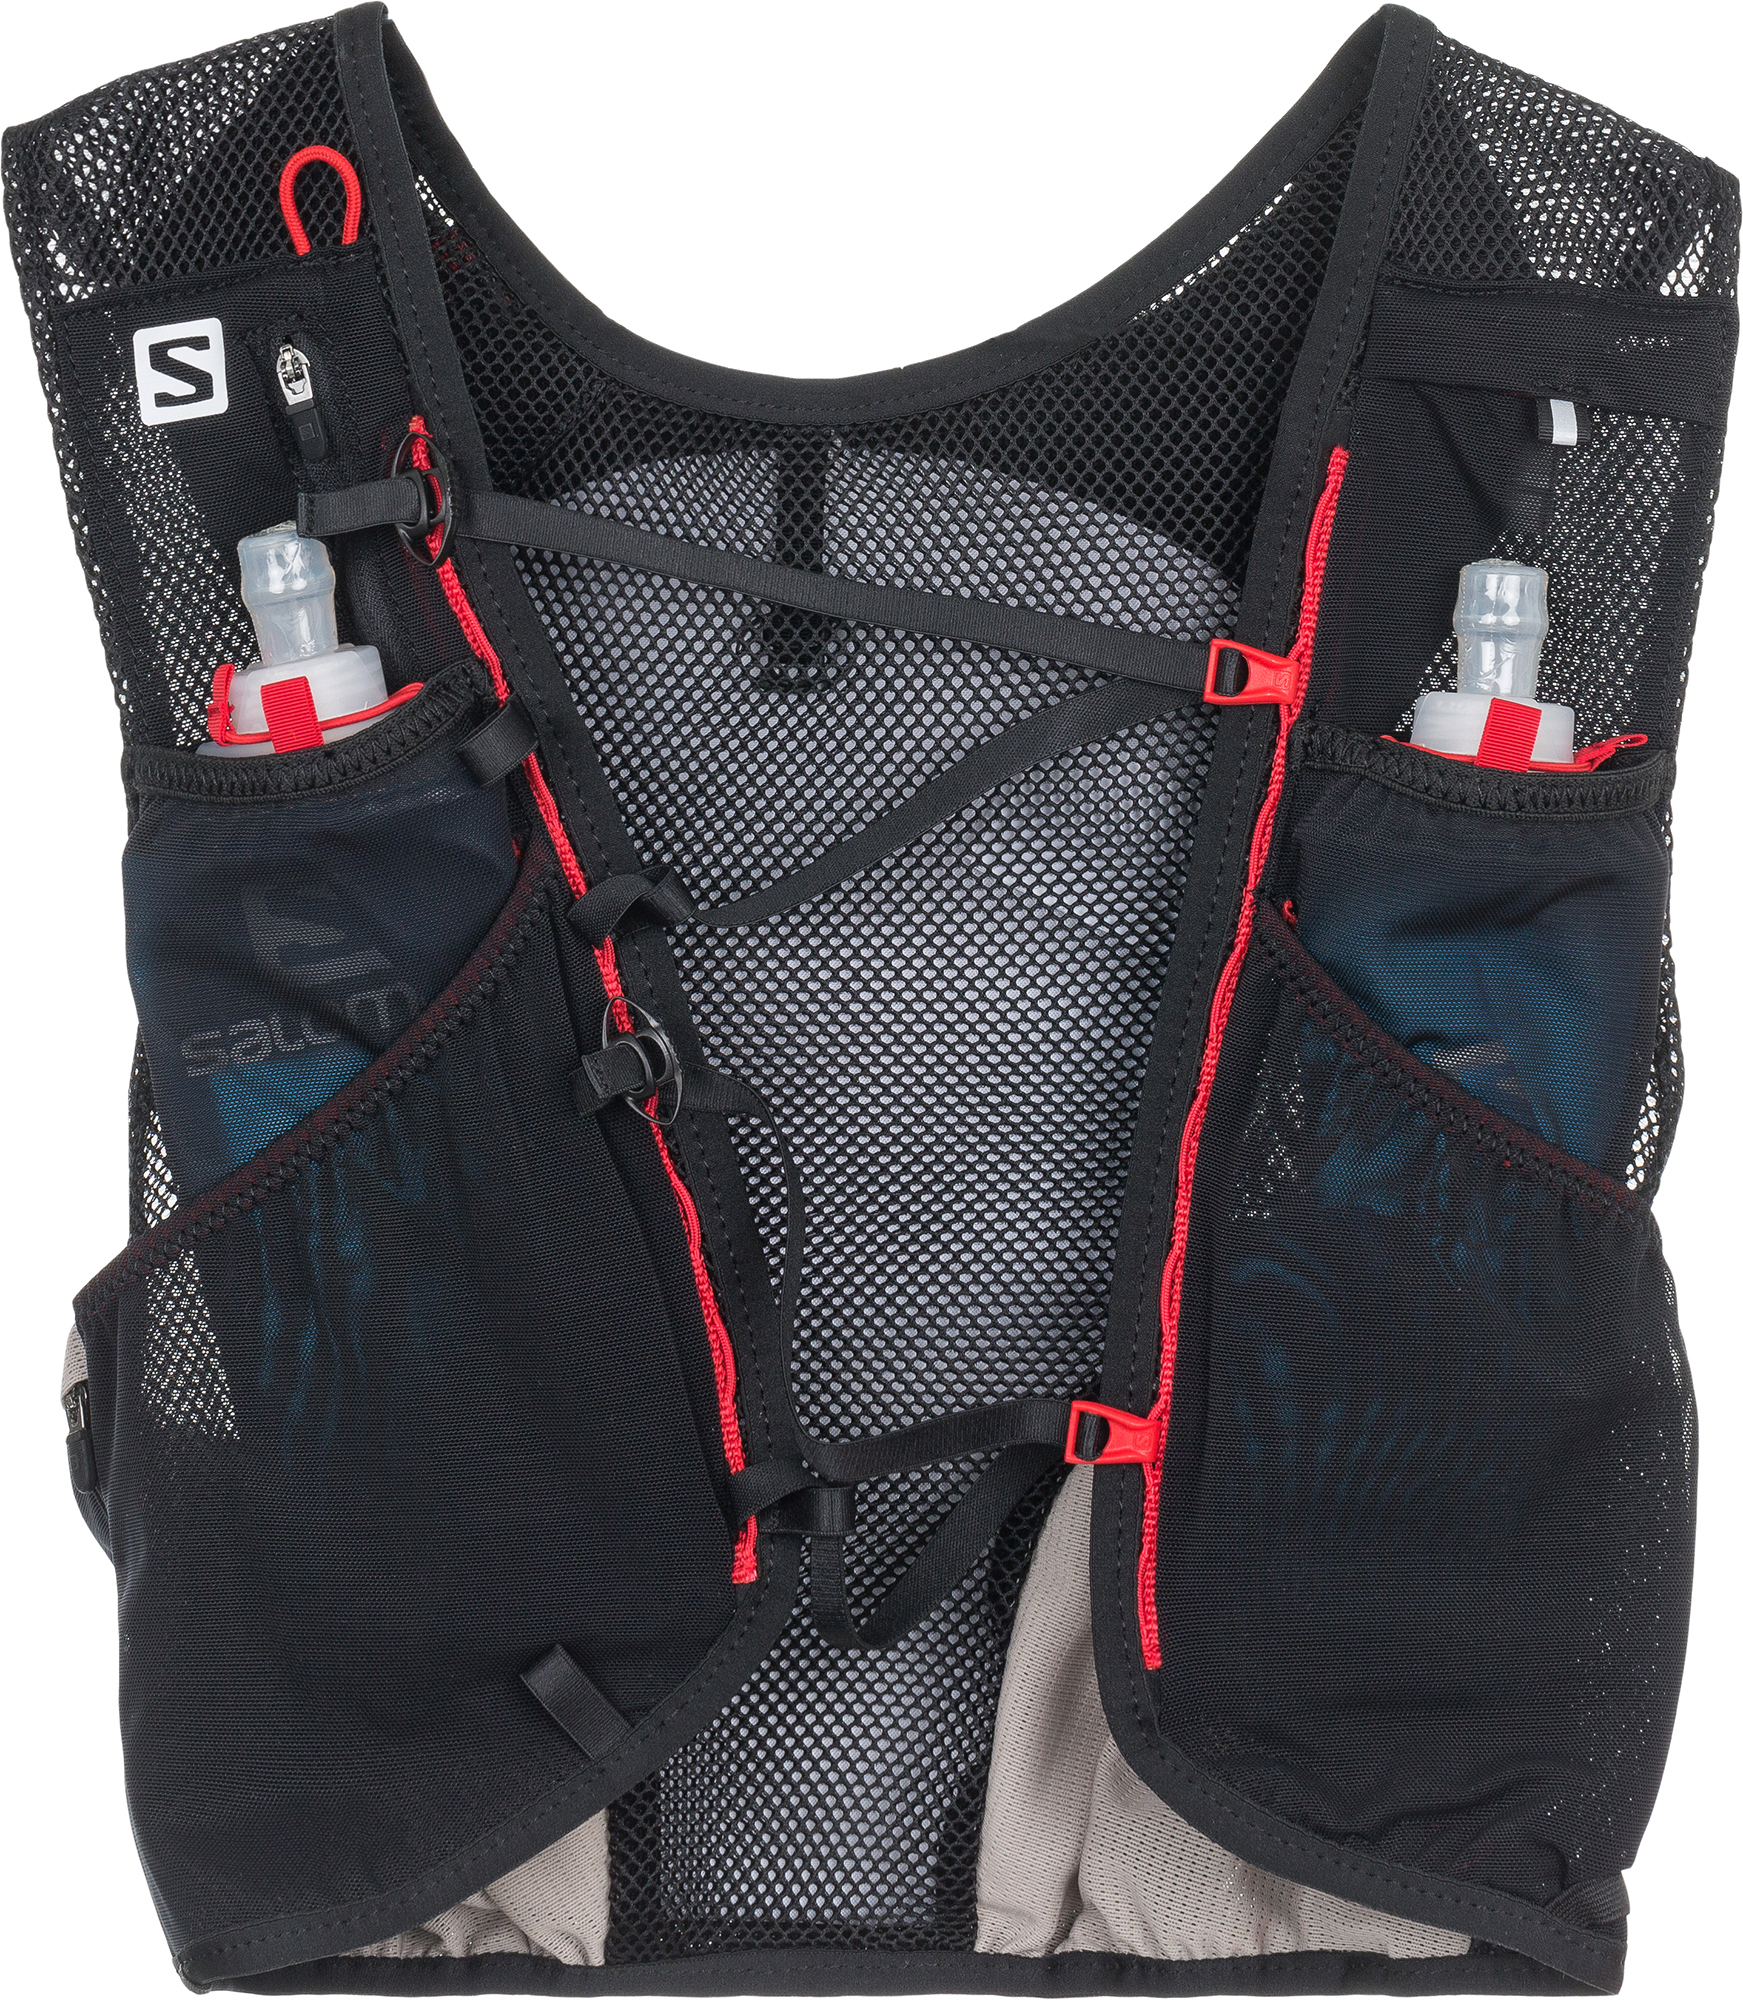 Salomon Рюкзак Salomon Adv Skin 5 Set, размер XS/S воблер trout pro minor crank 50f длина 5 см вес 5 г 35697